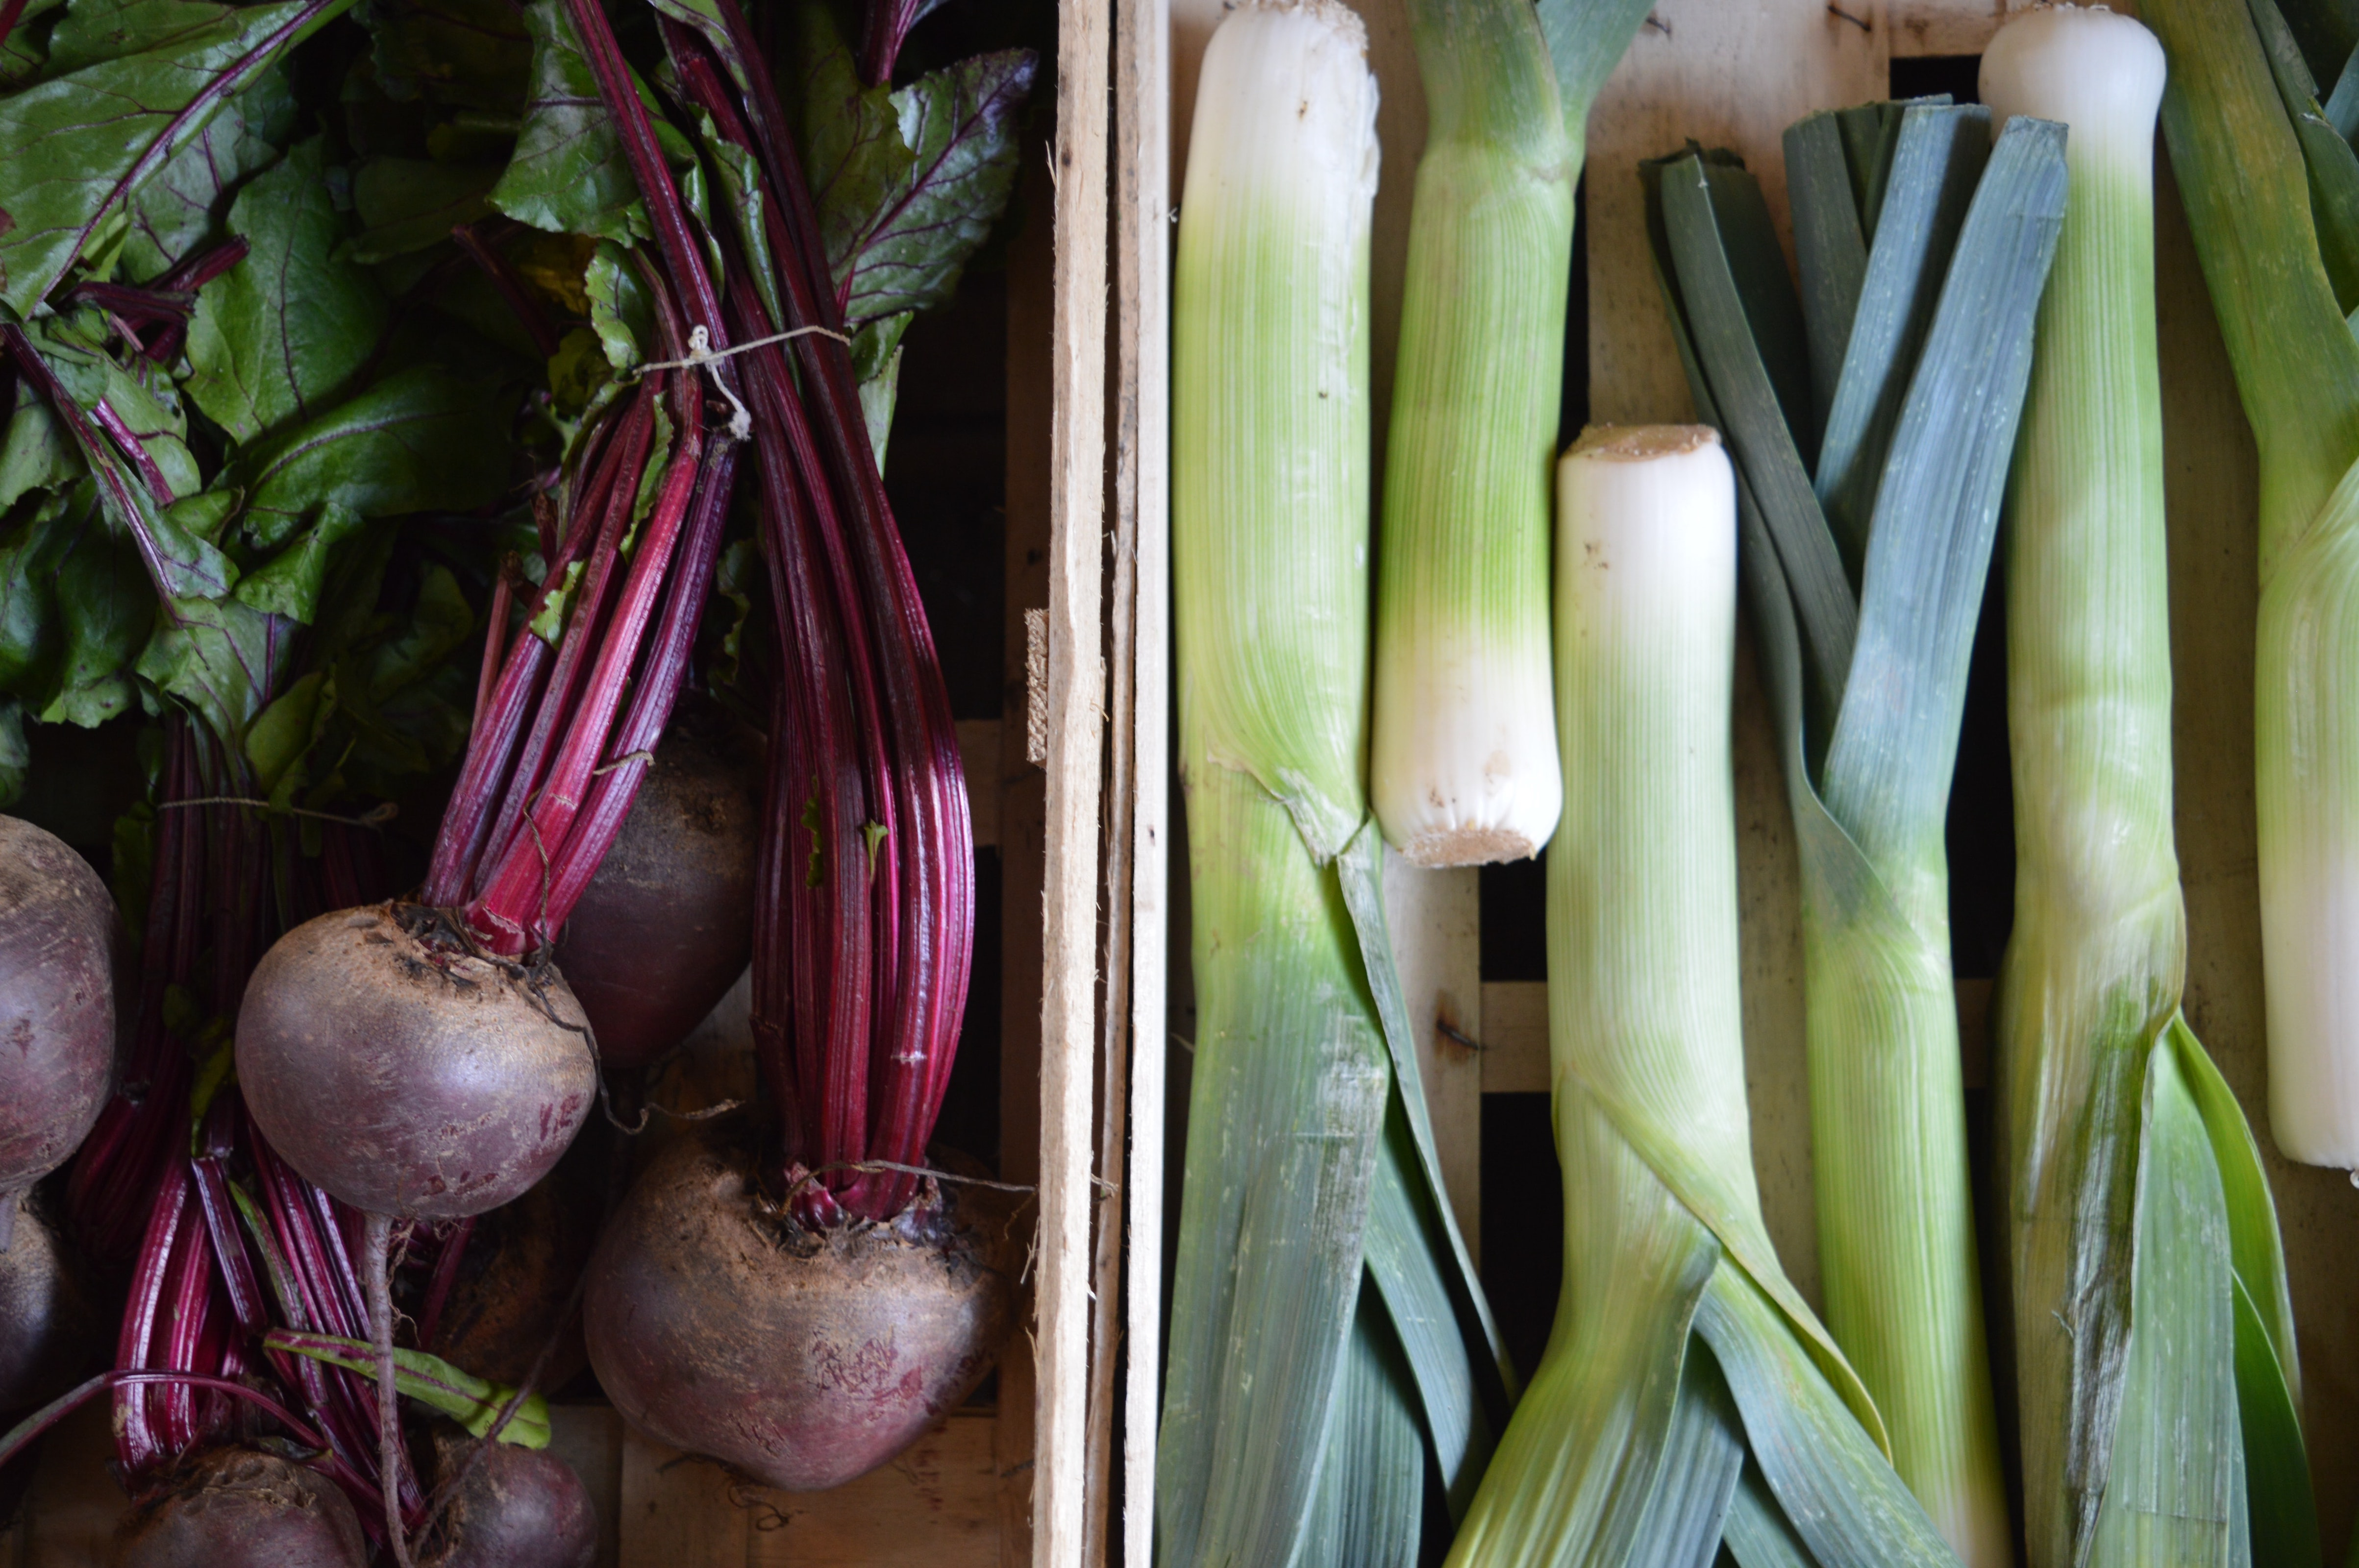 leeks and red onions